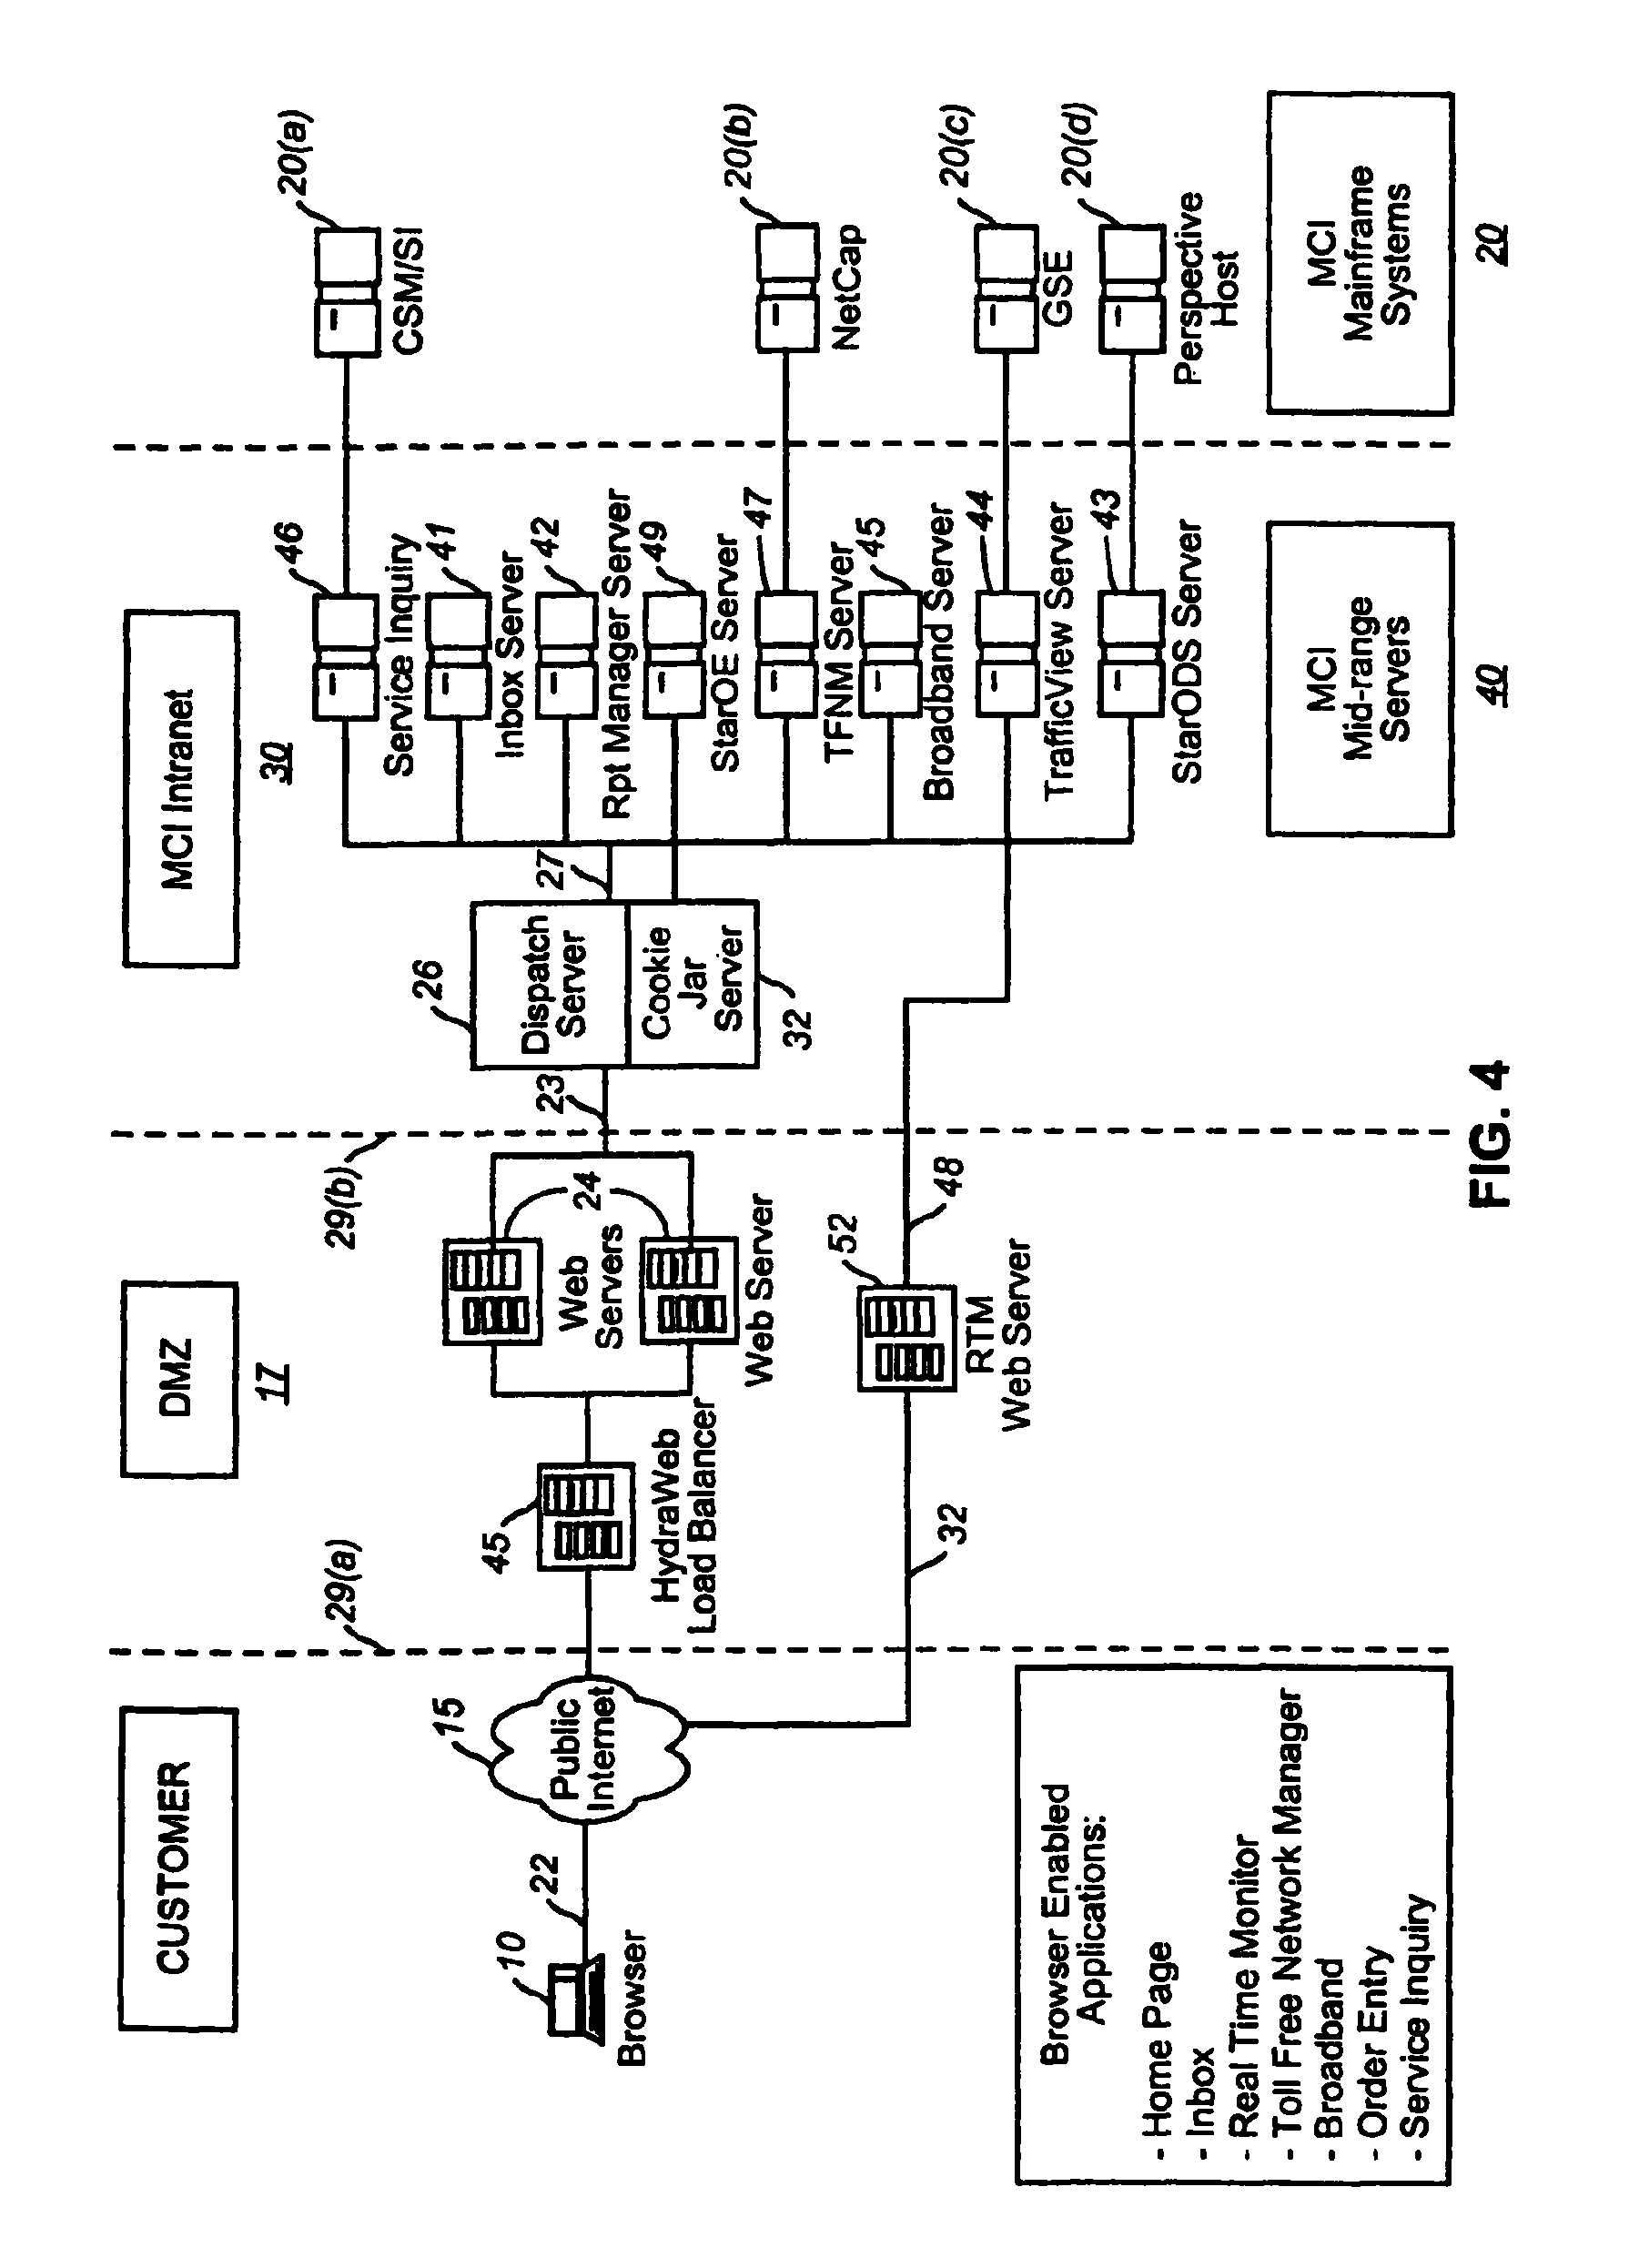 Us8935772b2 secure server architecture for web based data us8935772b2 secure server architecture for web based data management google patents asfbconference2016 Gallery